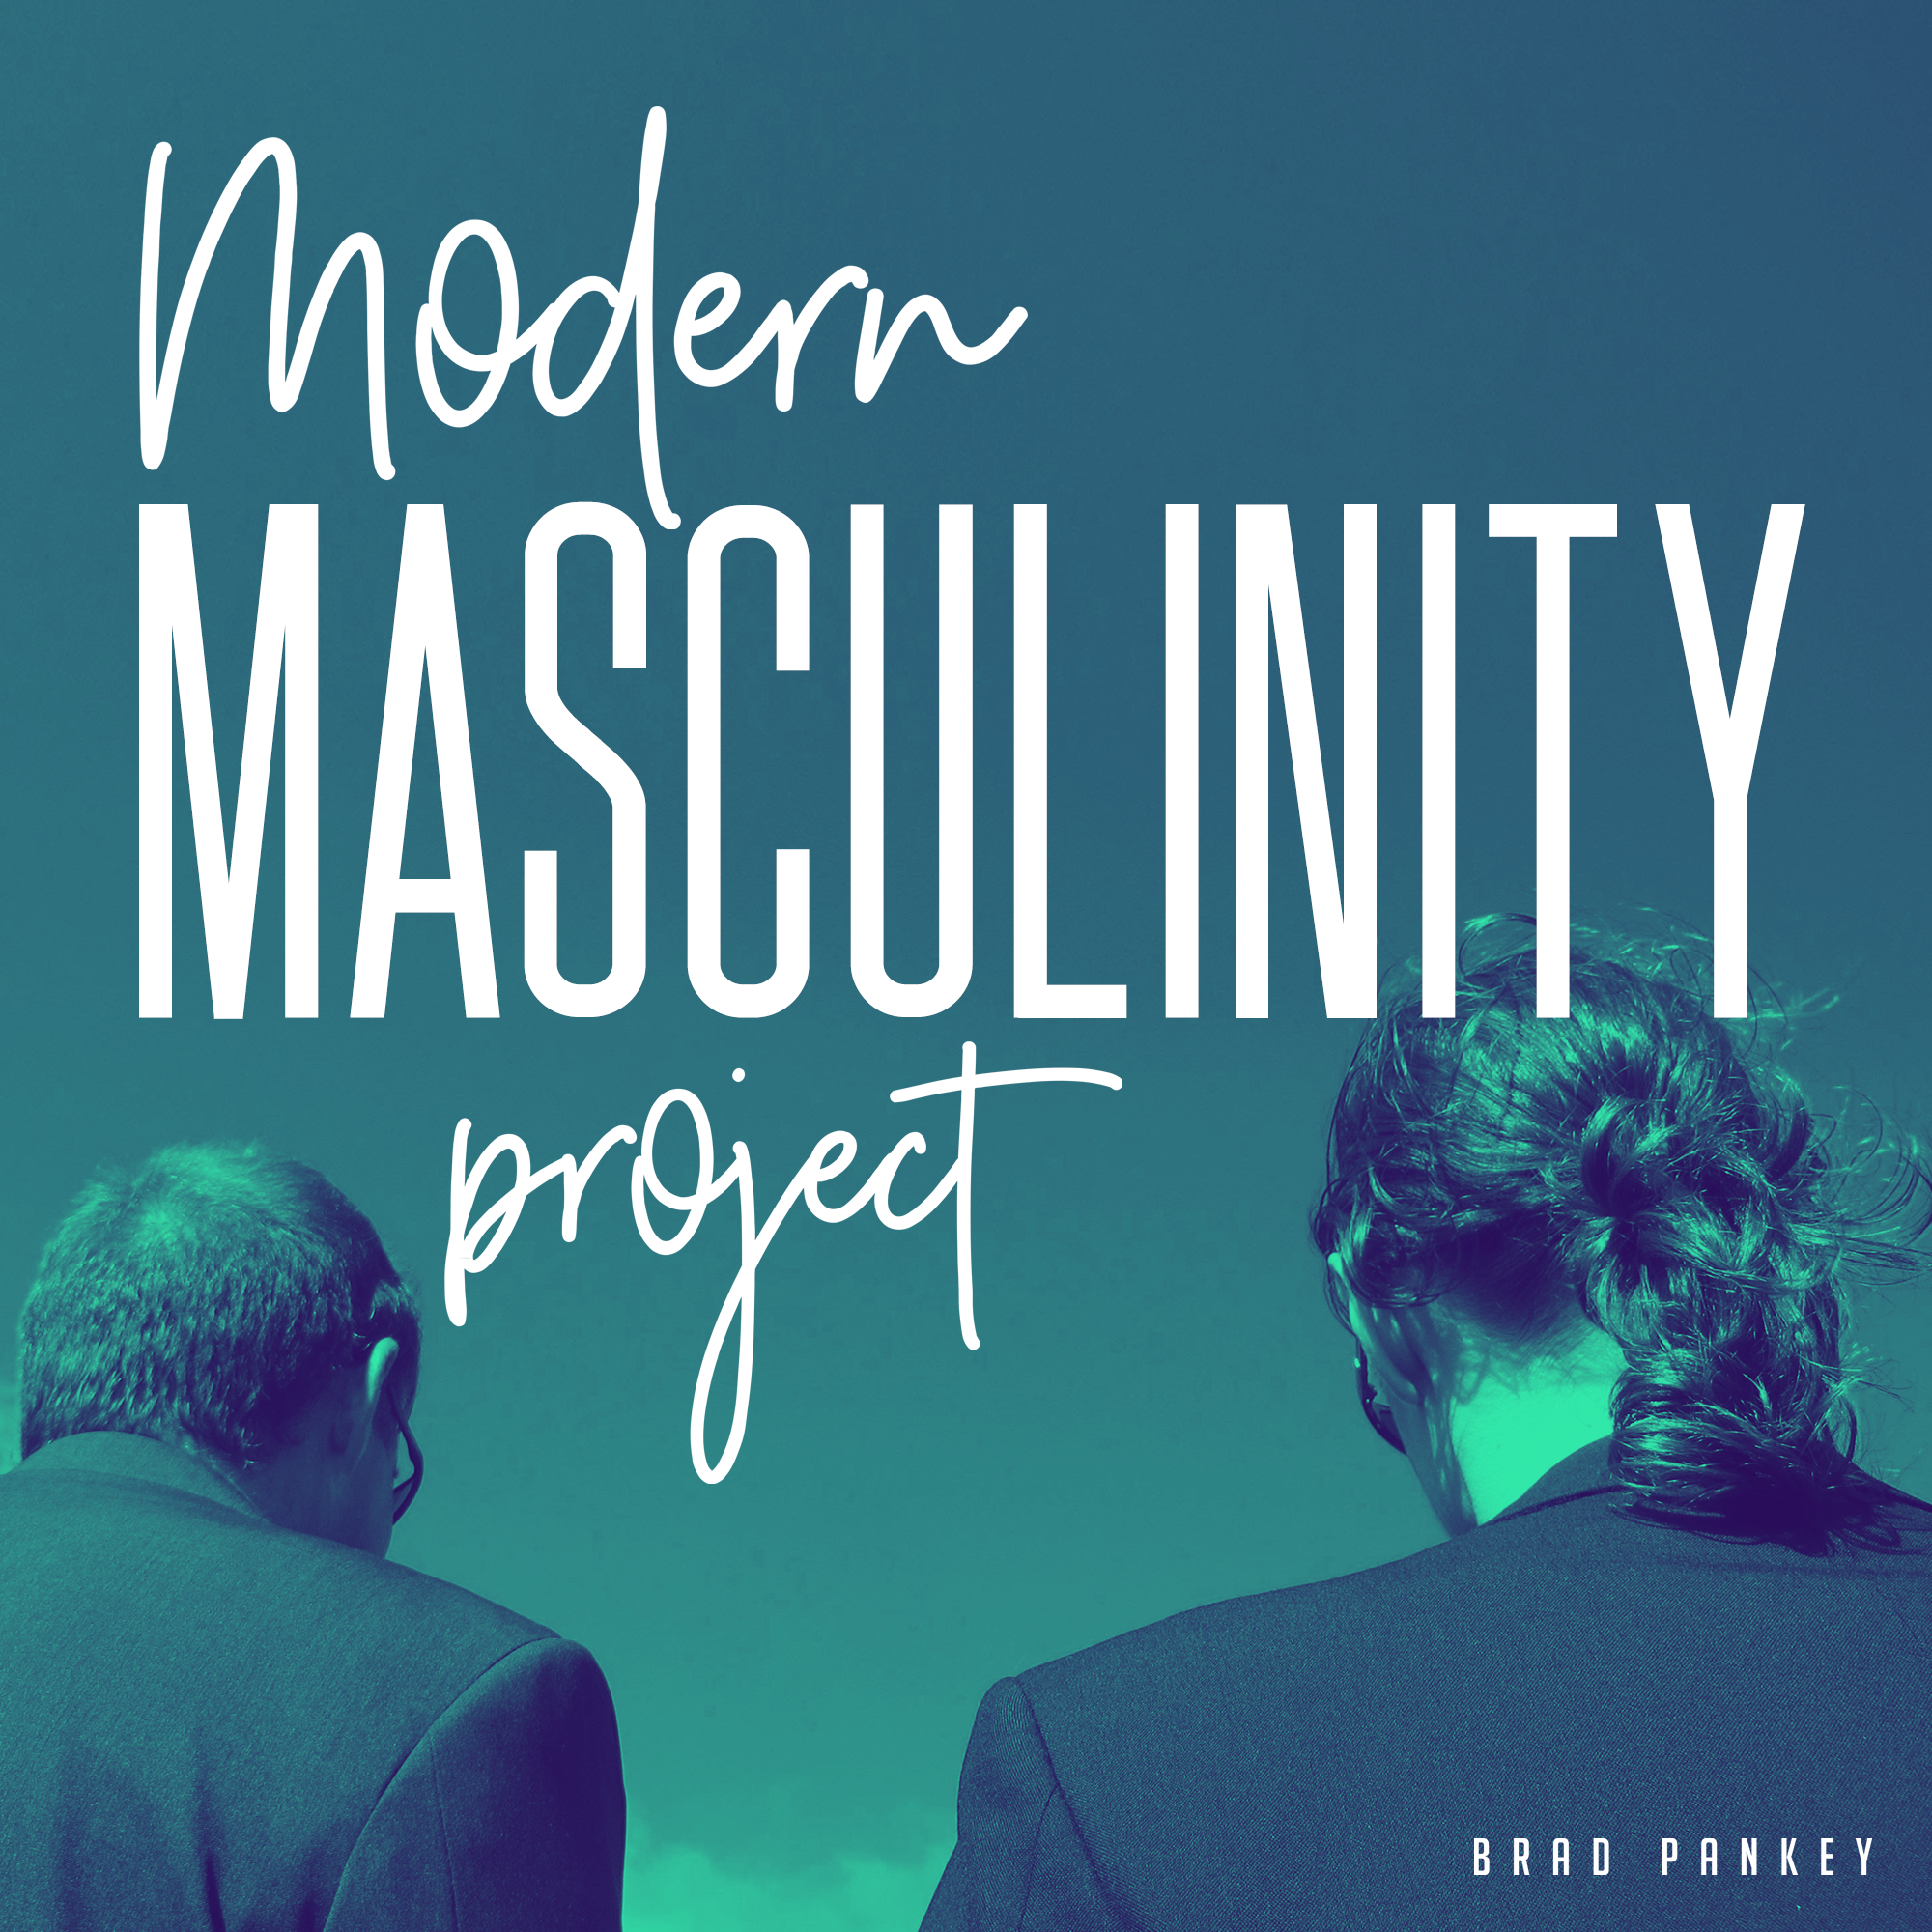 . The Modern Masculinity Project